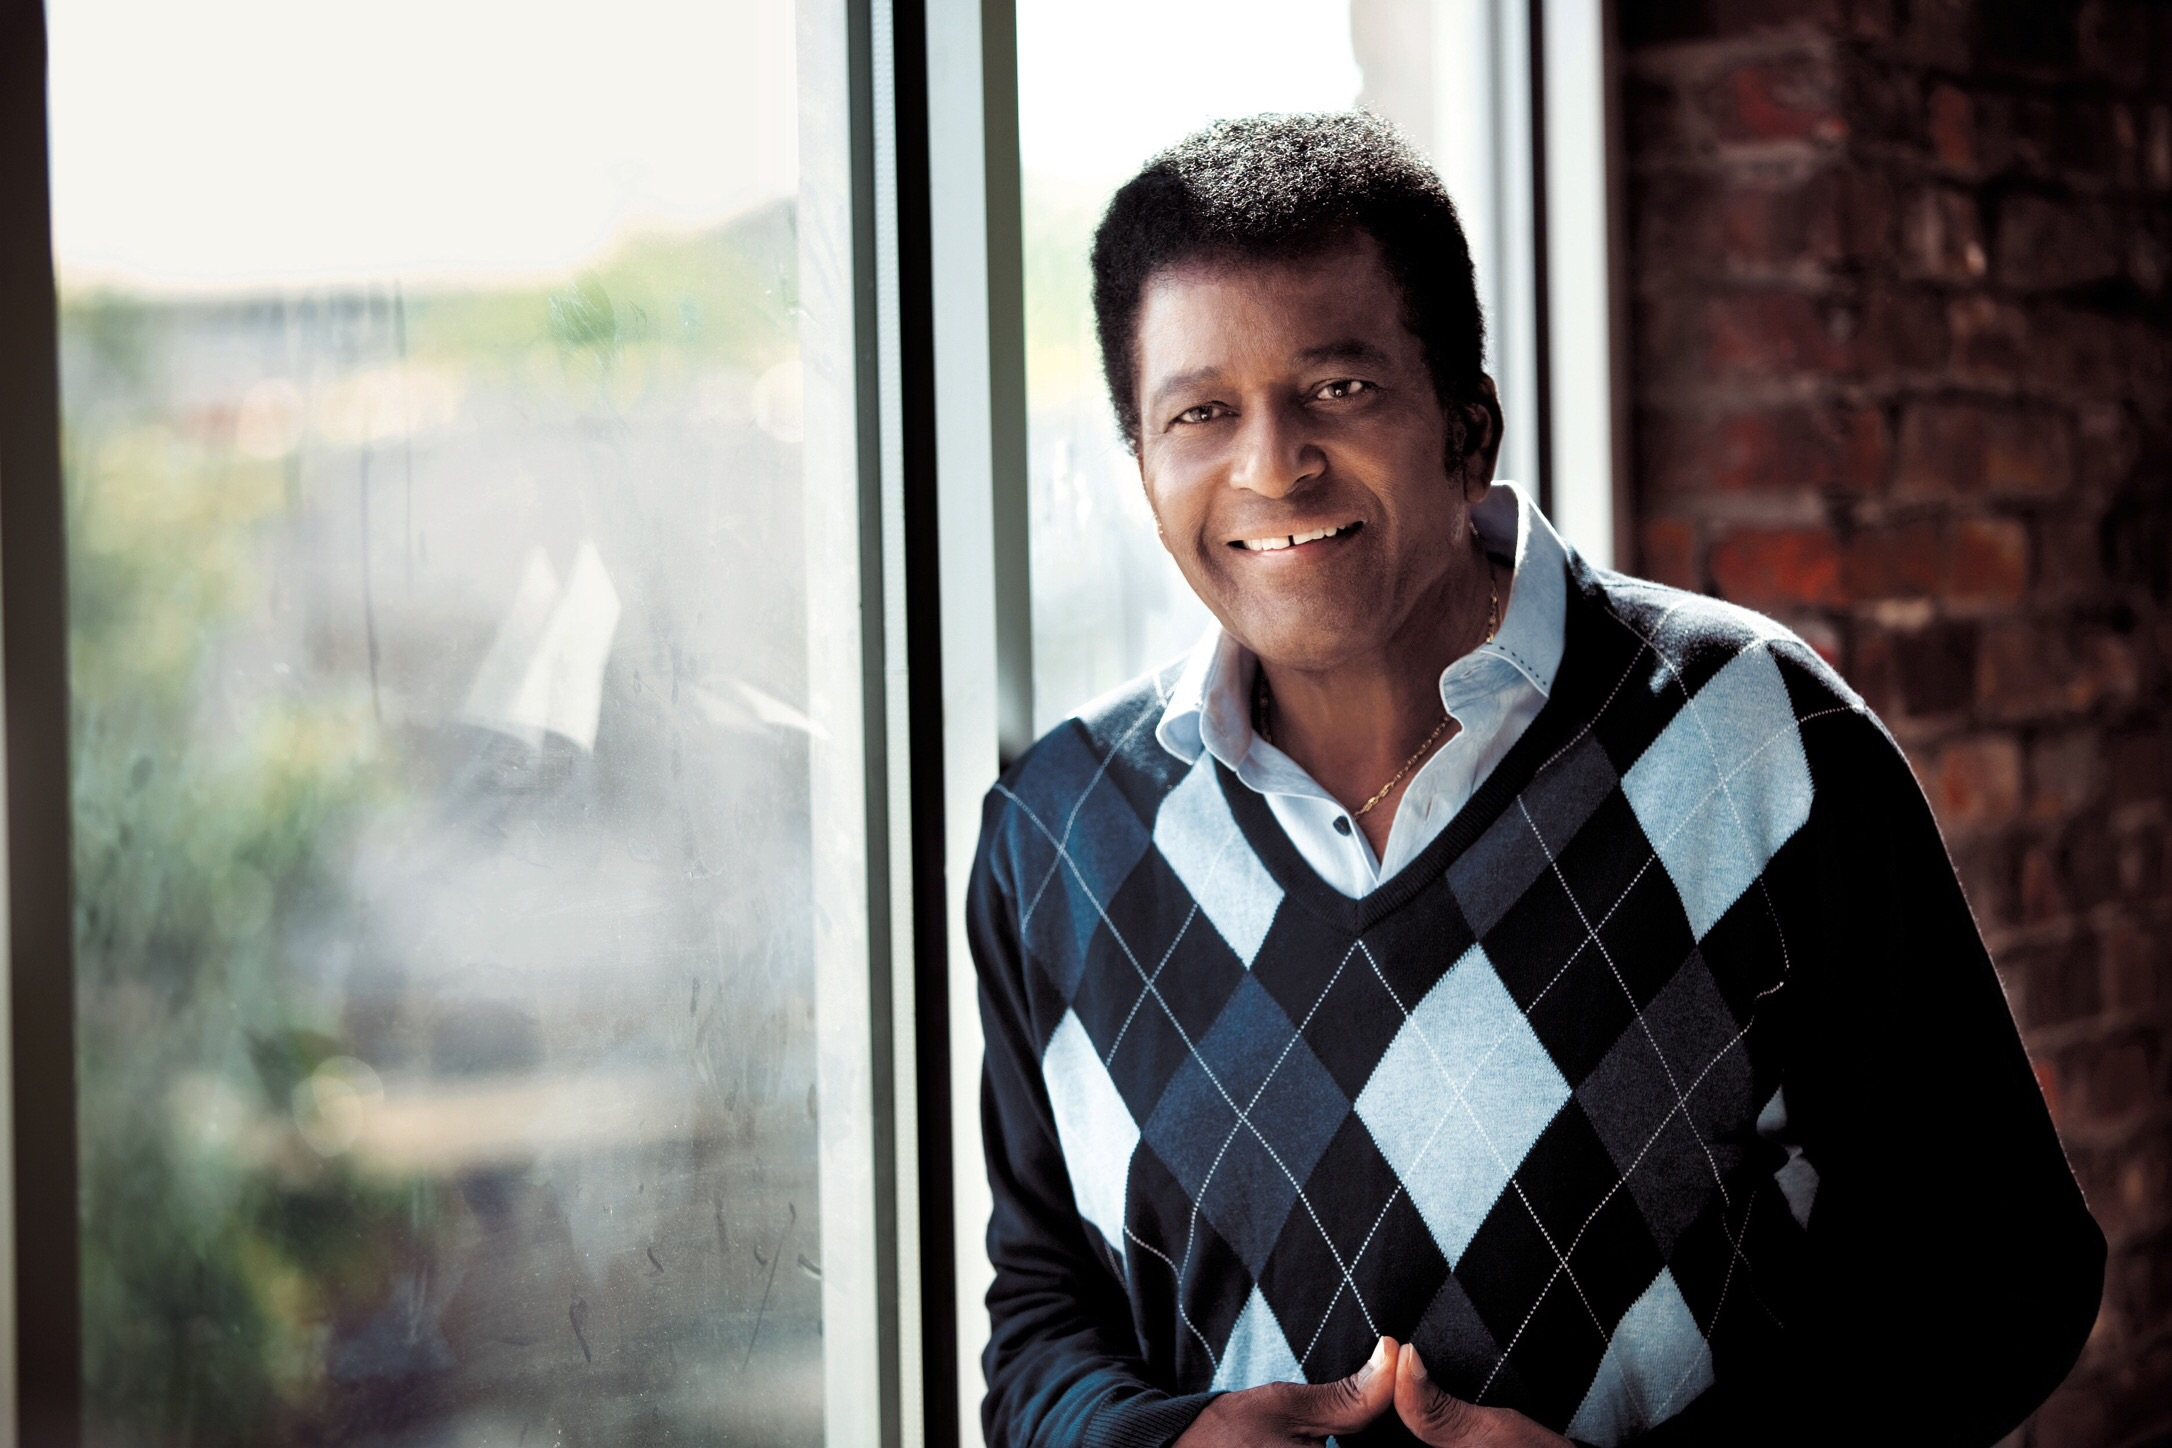 Charlie Pride Hits Amazing siriusxm celebrates charley pride's 50 years in country music in